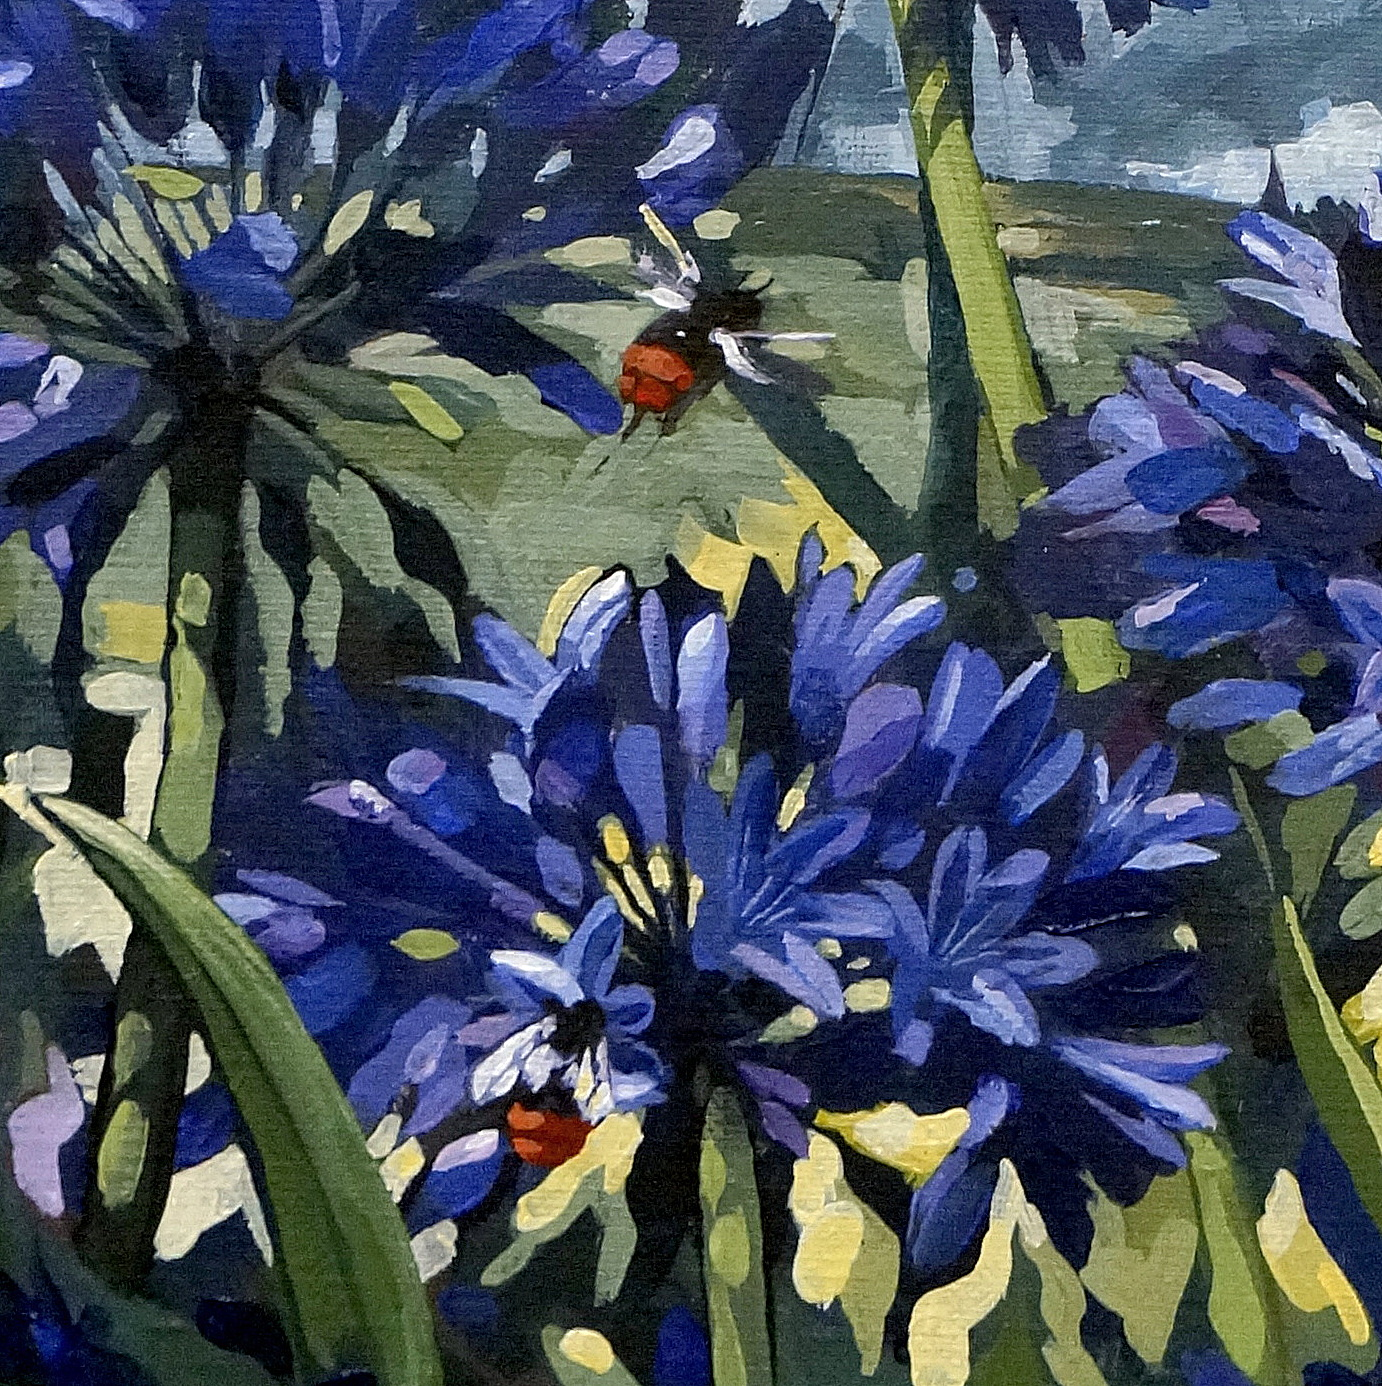 Agapanthus, fennel, birds and bees.